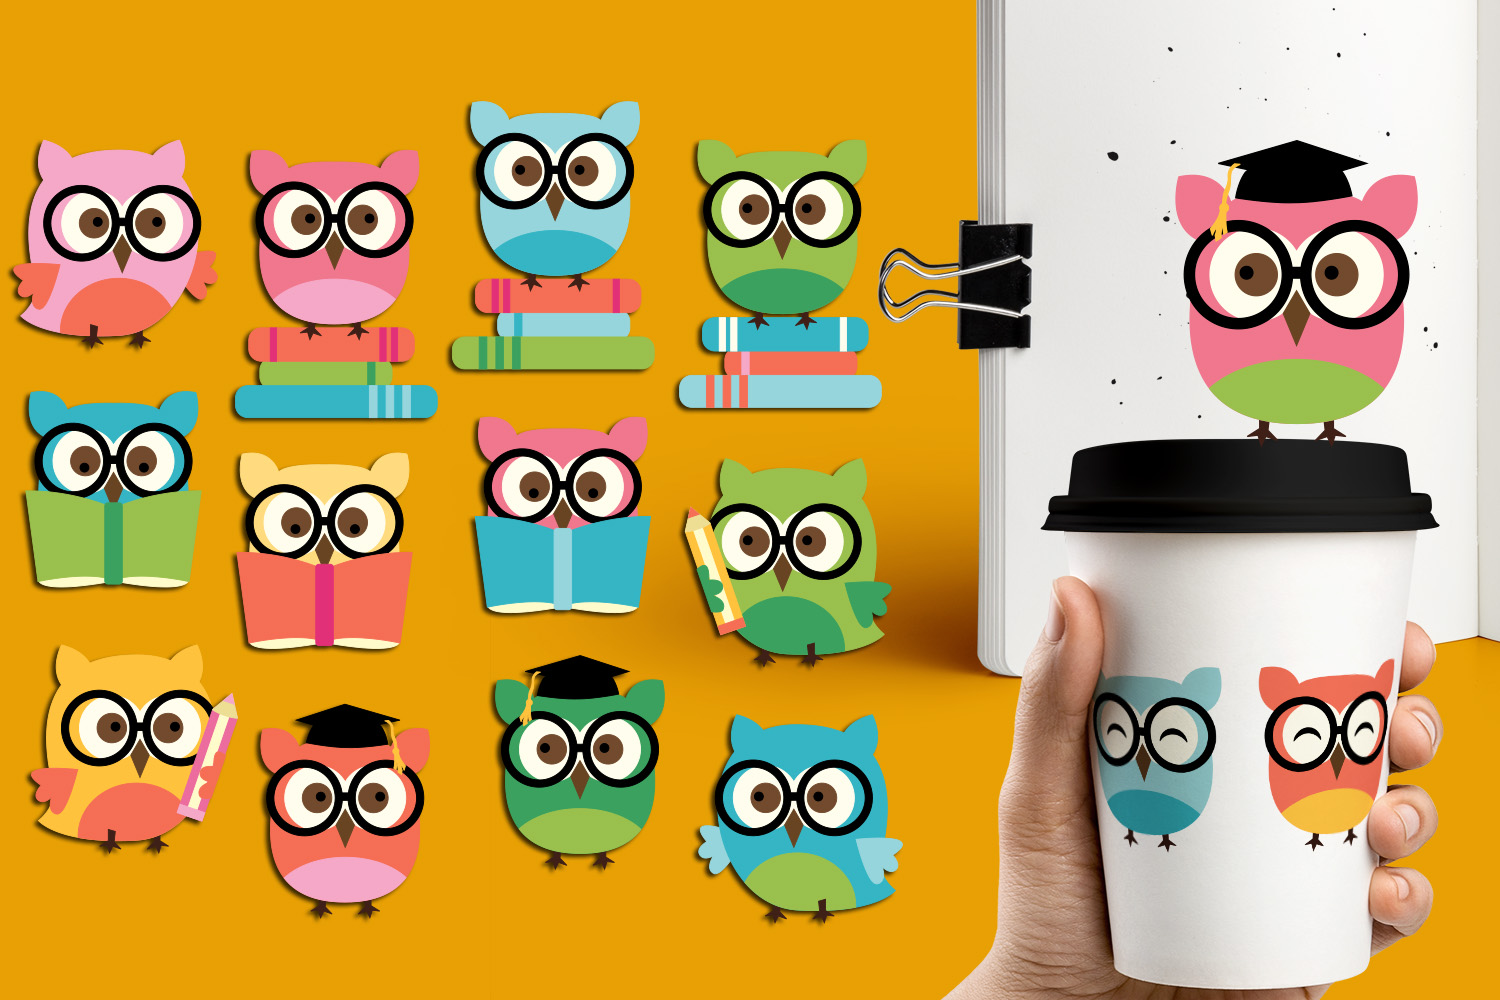 Smart owls clipart Back to school owl glasses books.